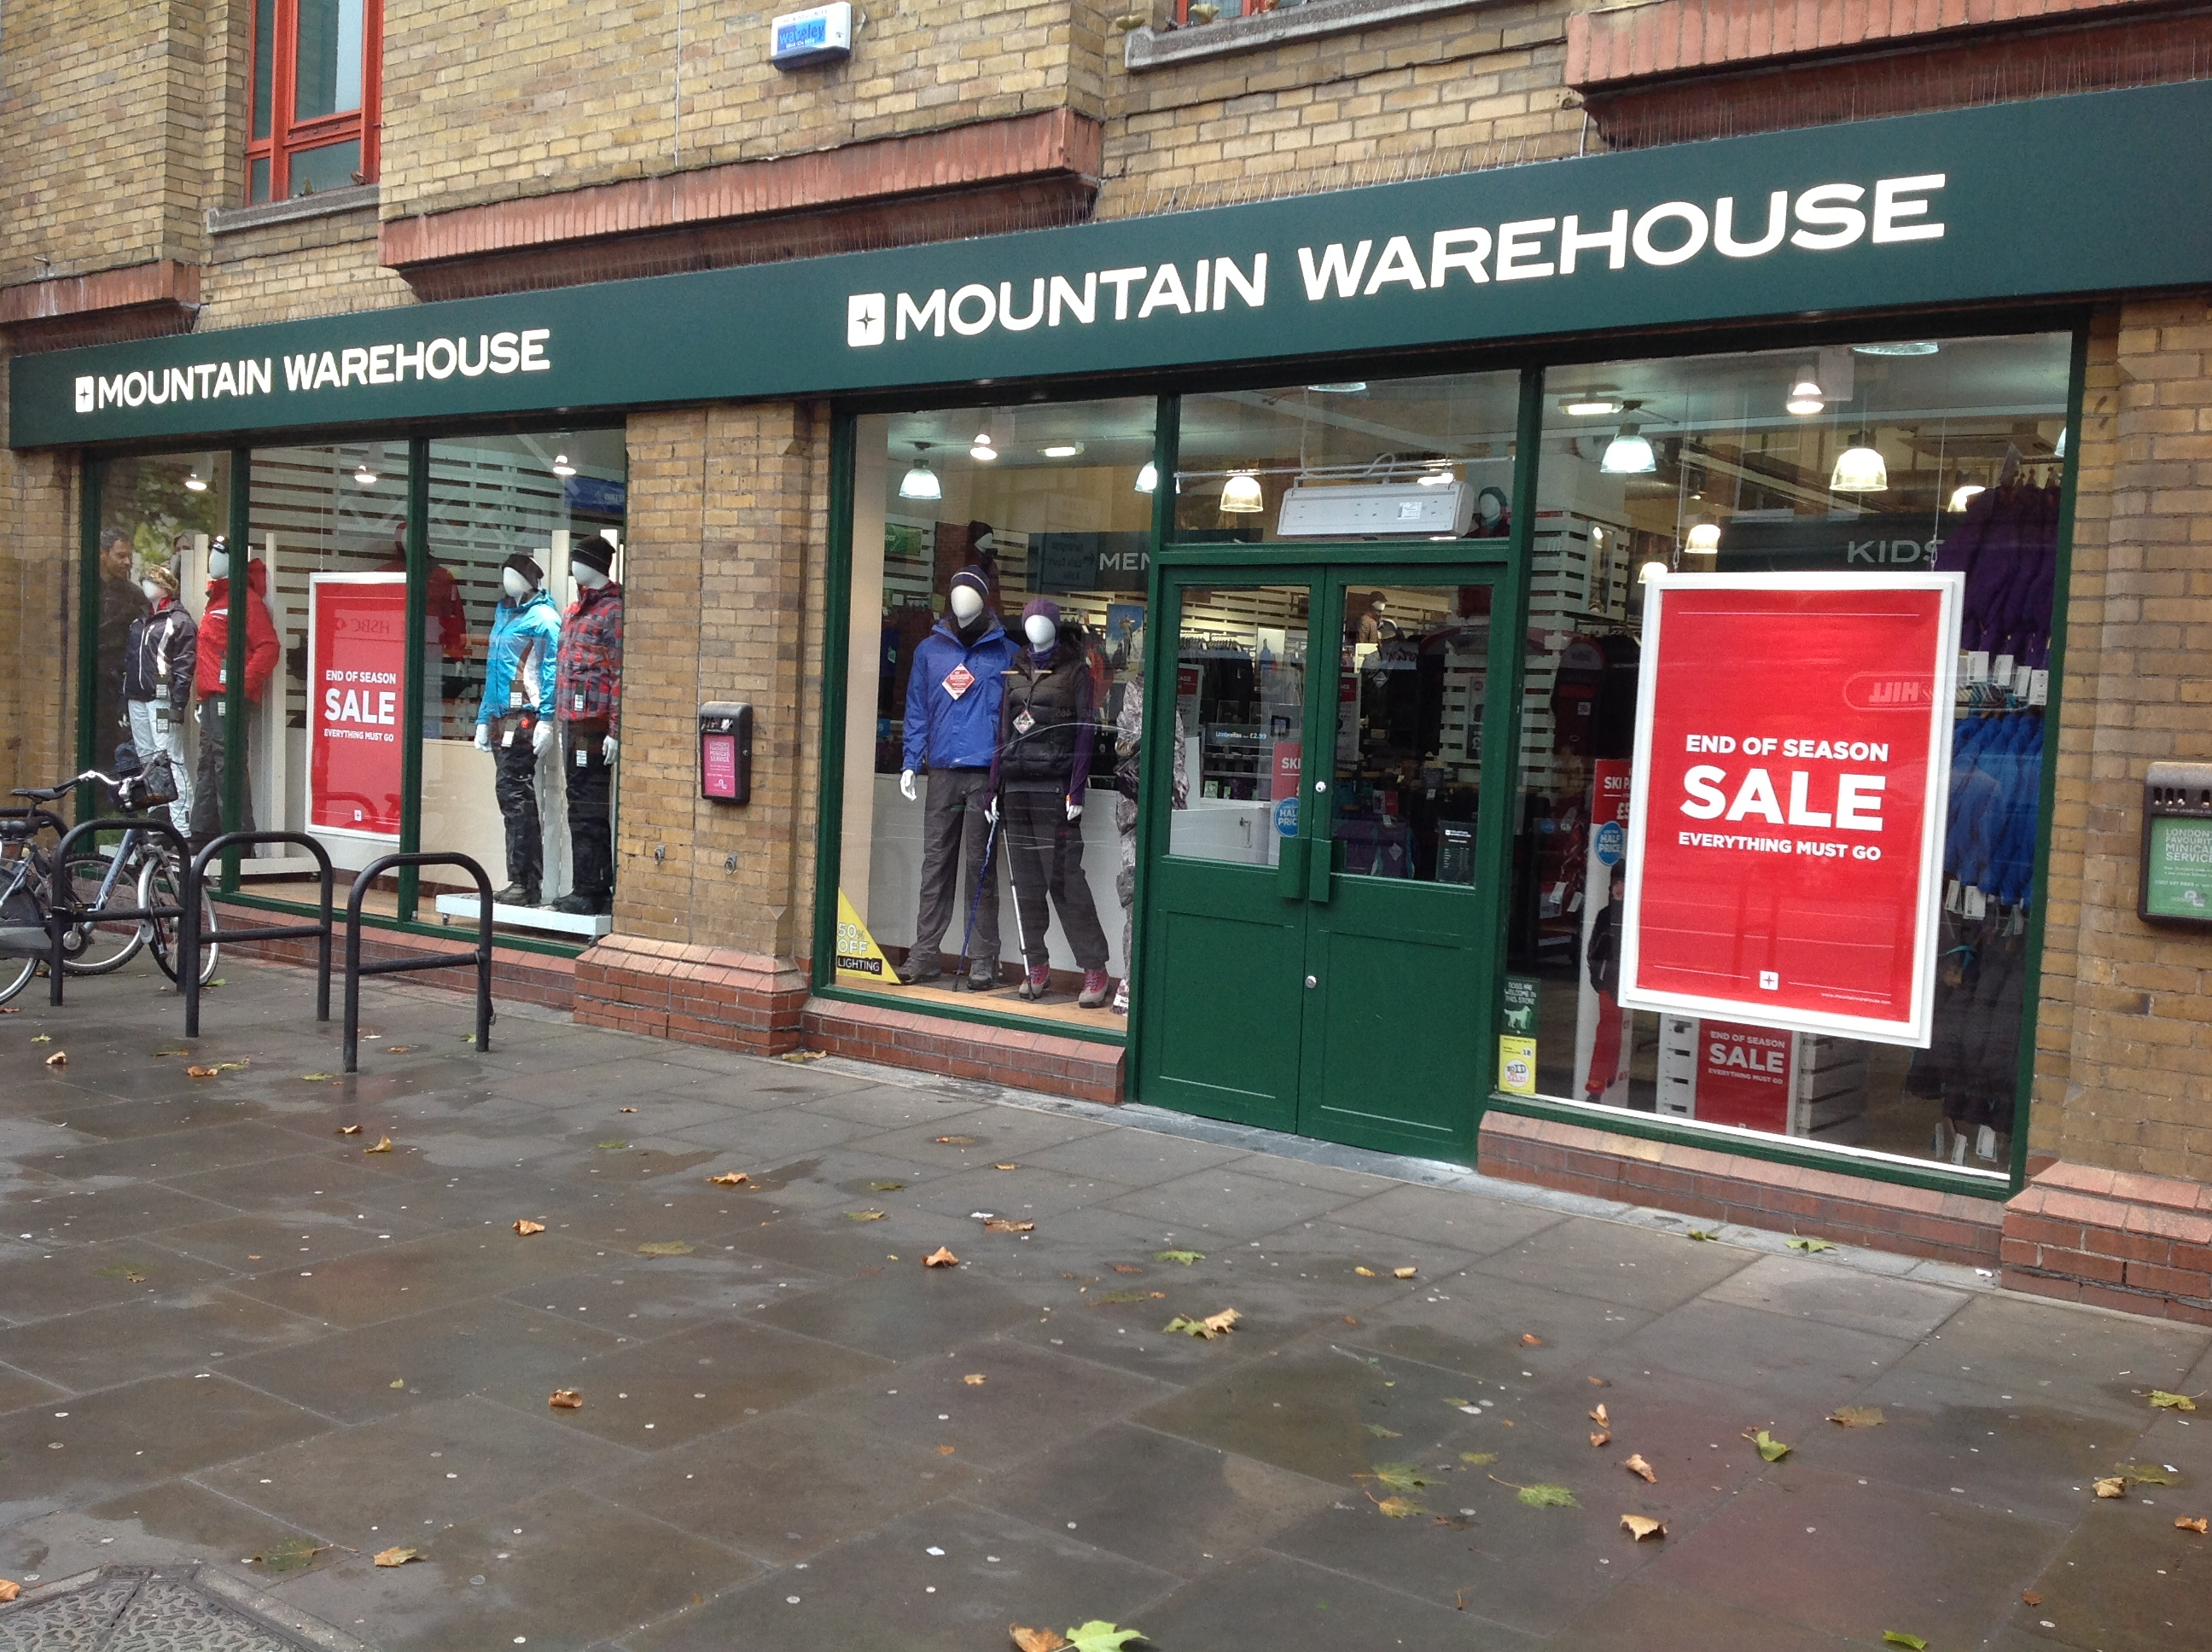 Quality outdoor clothing & equipment at the lowest prices from Mountain Warehouse Canada. Buy outdoor clothing online or in store with dozens of deals available.